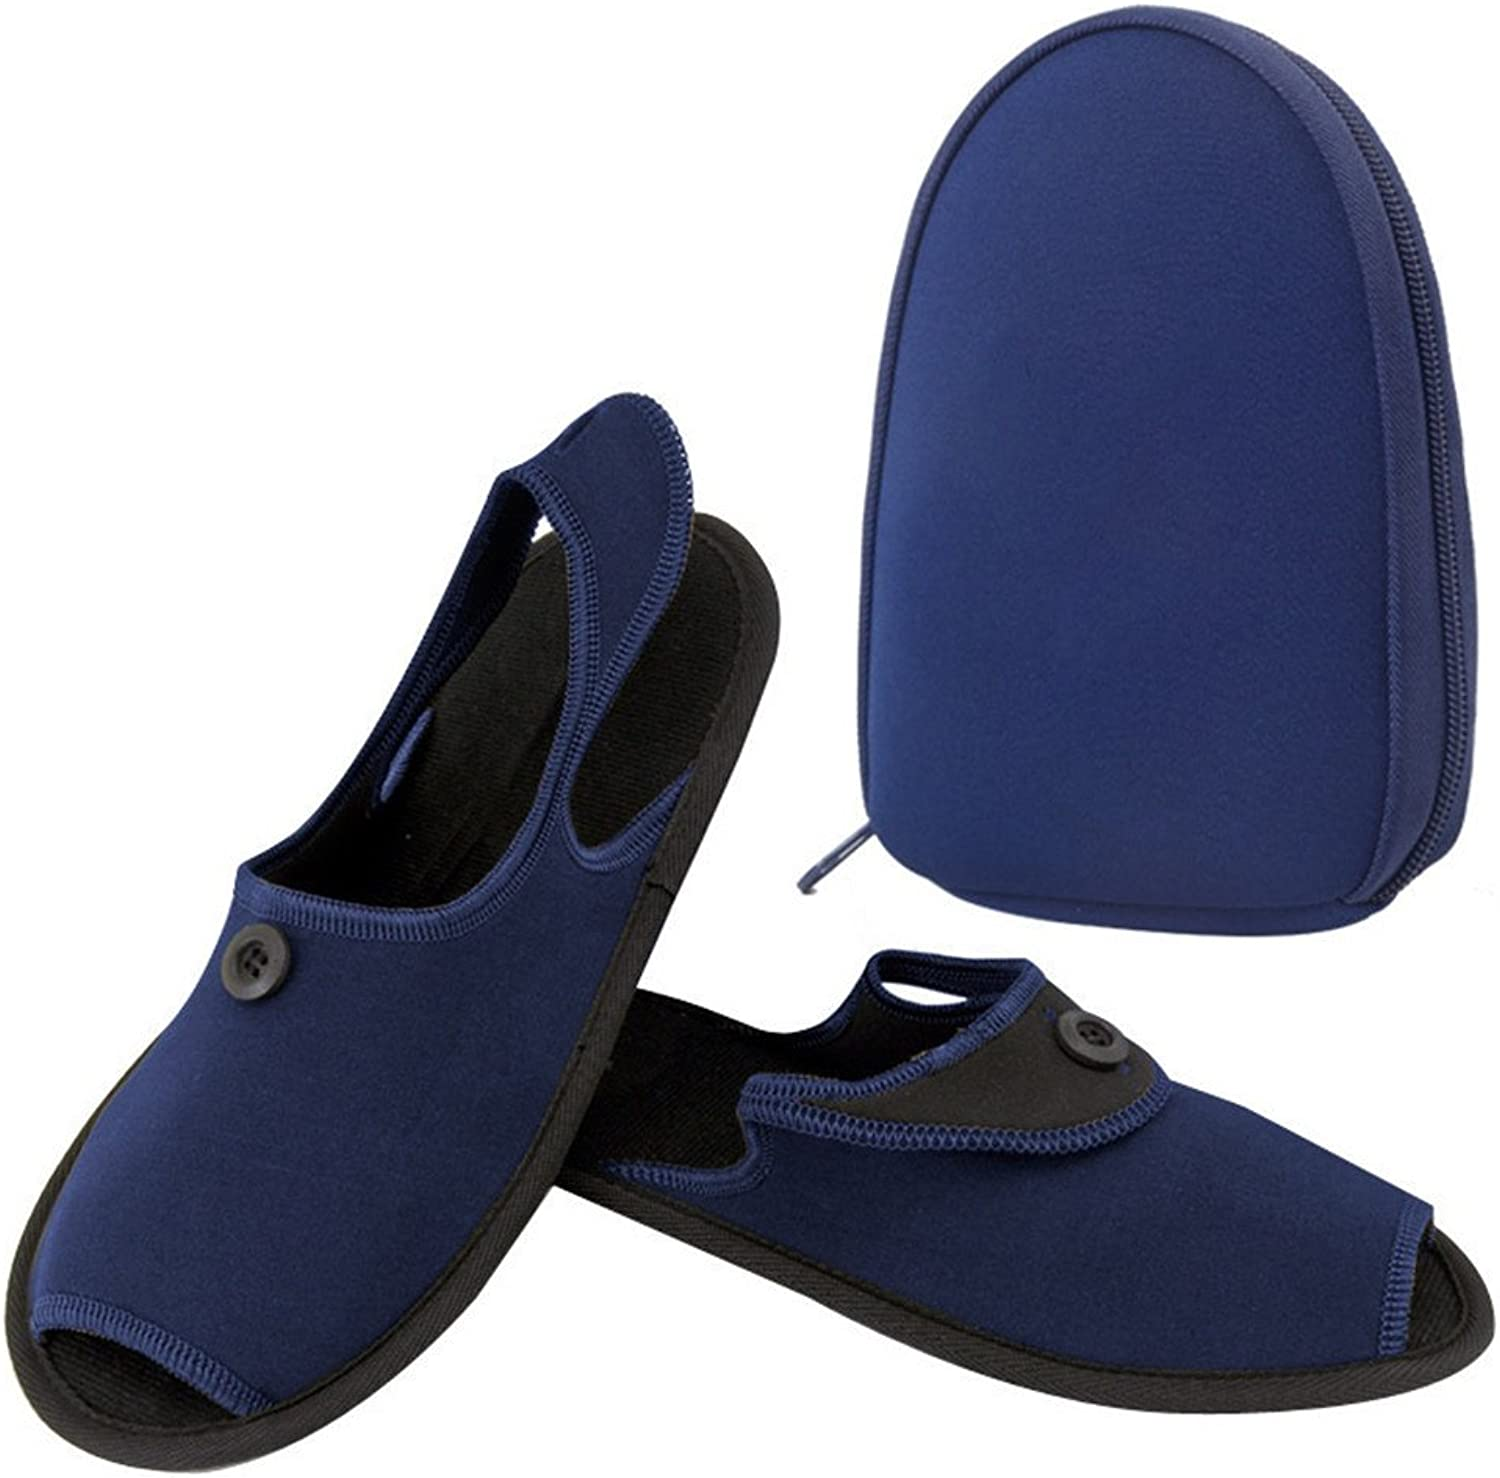 Business Trip Folding Slippers Durable Non-Slip Comfort Slippers Hotel air Slippers